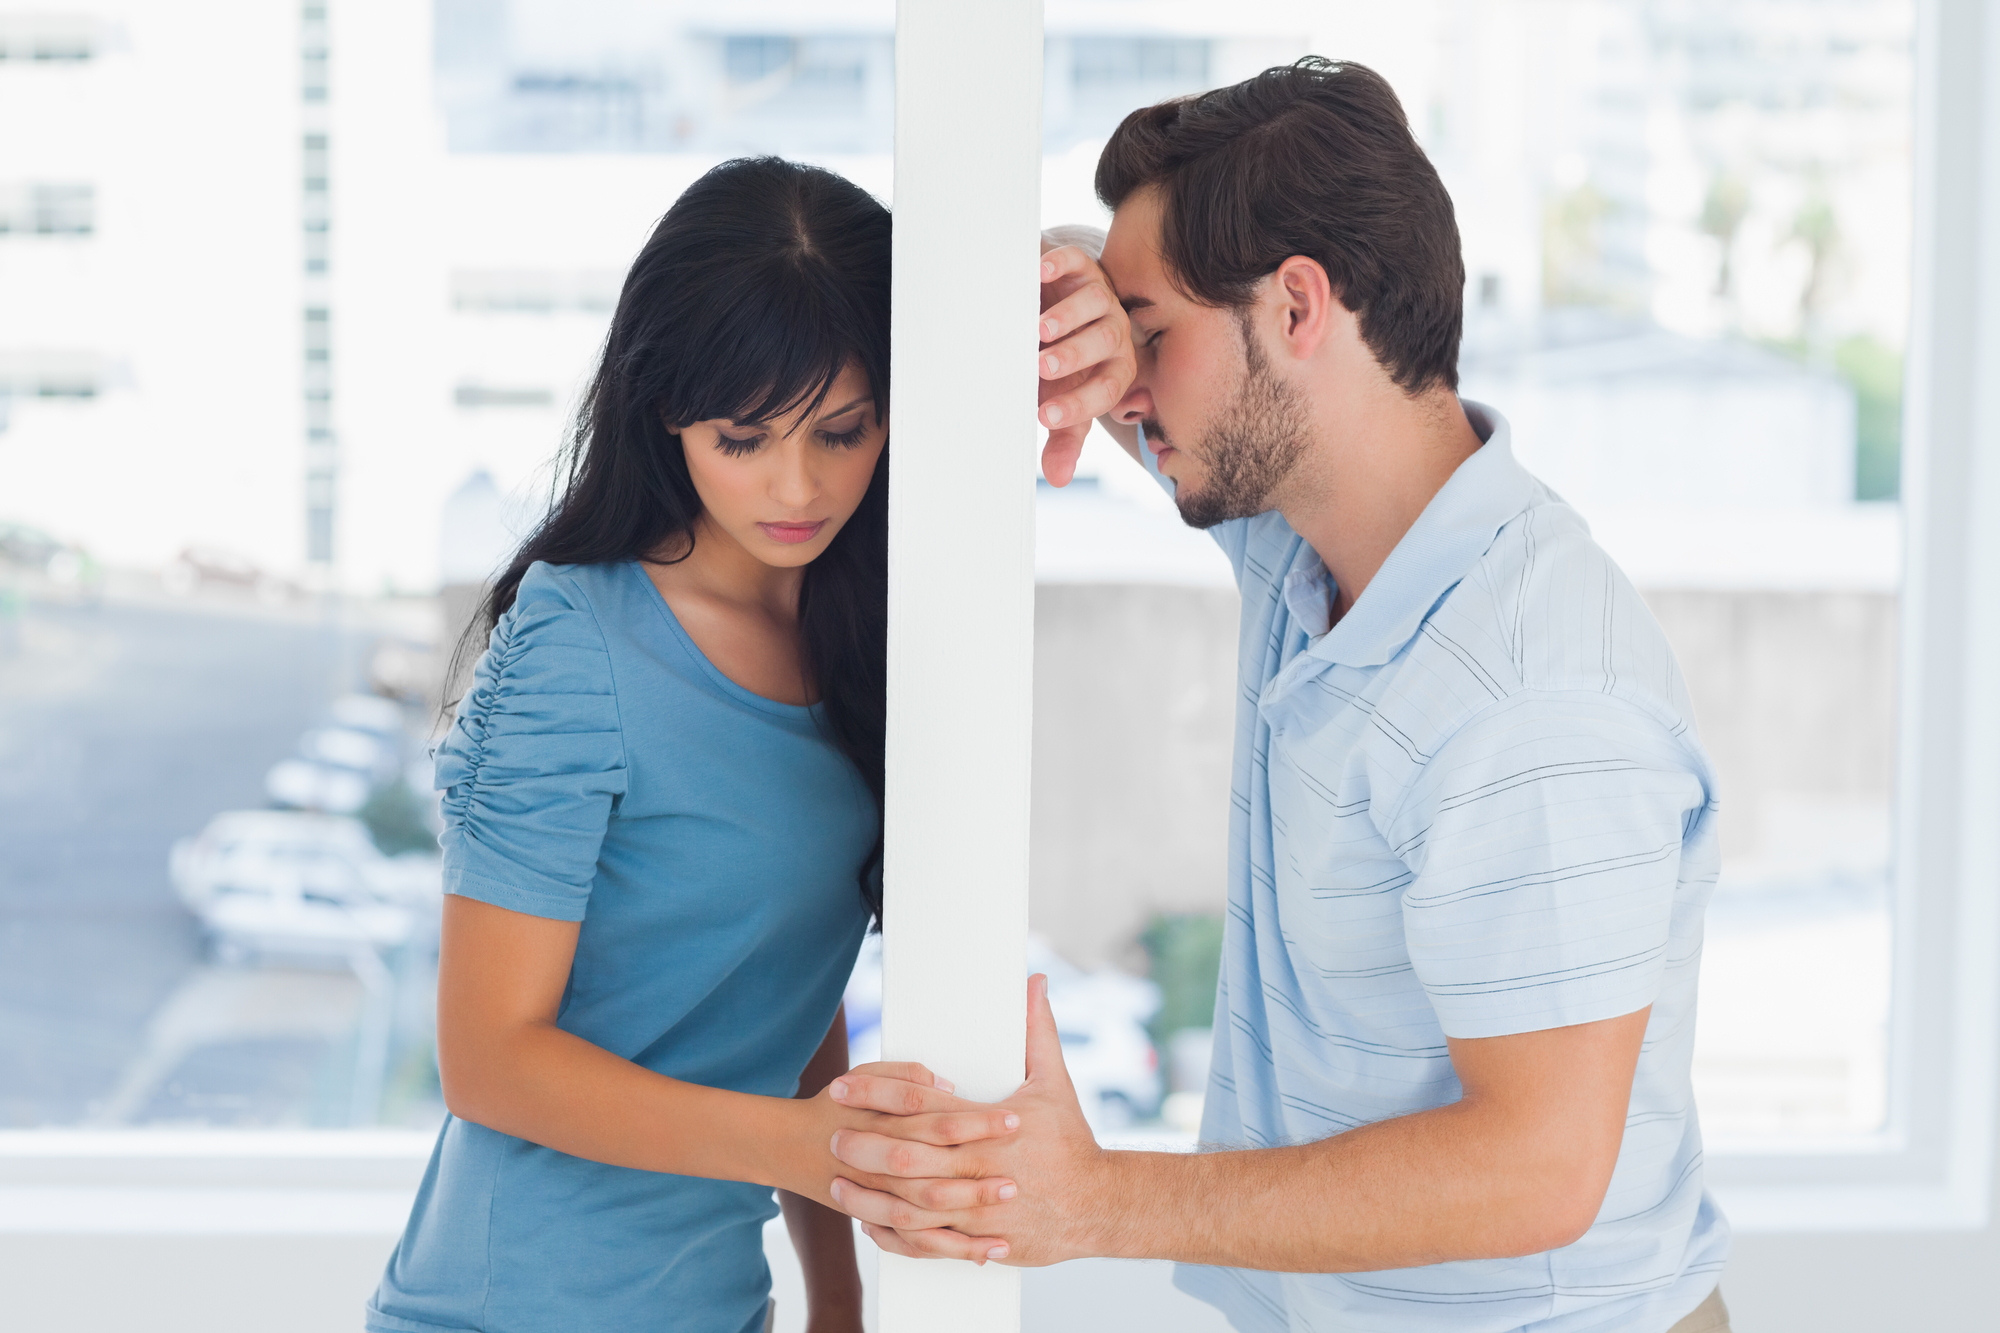 Tips for repairing a damaged relationship